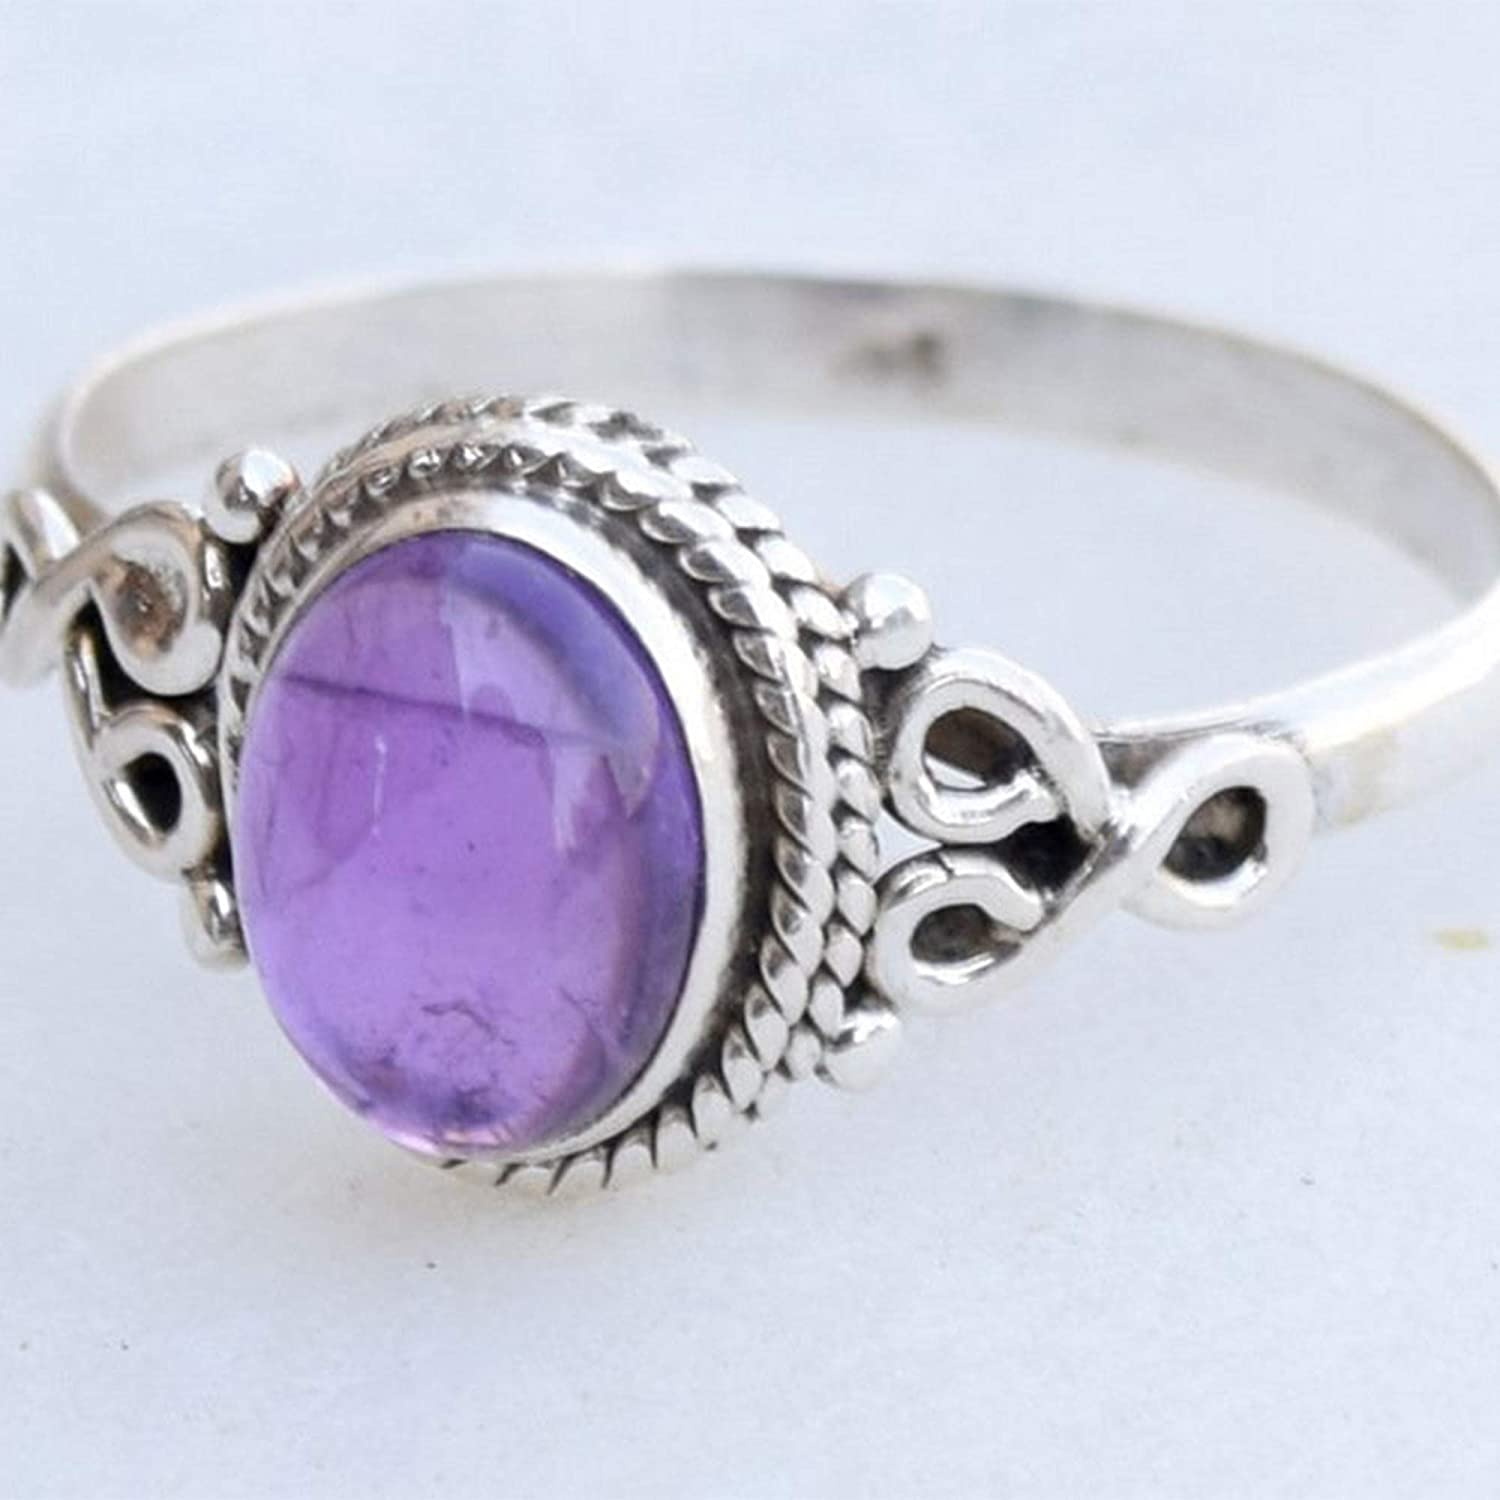 Amethyst Jewellery Gift For Her Womens Ring Women Jewellery Handmade Gift  925 Sterling Silver Ring Natural Amethyst Jewellery Gemstone